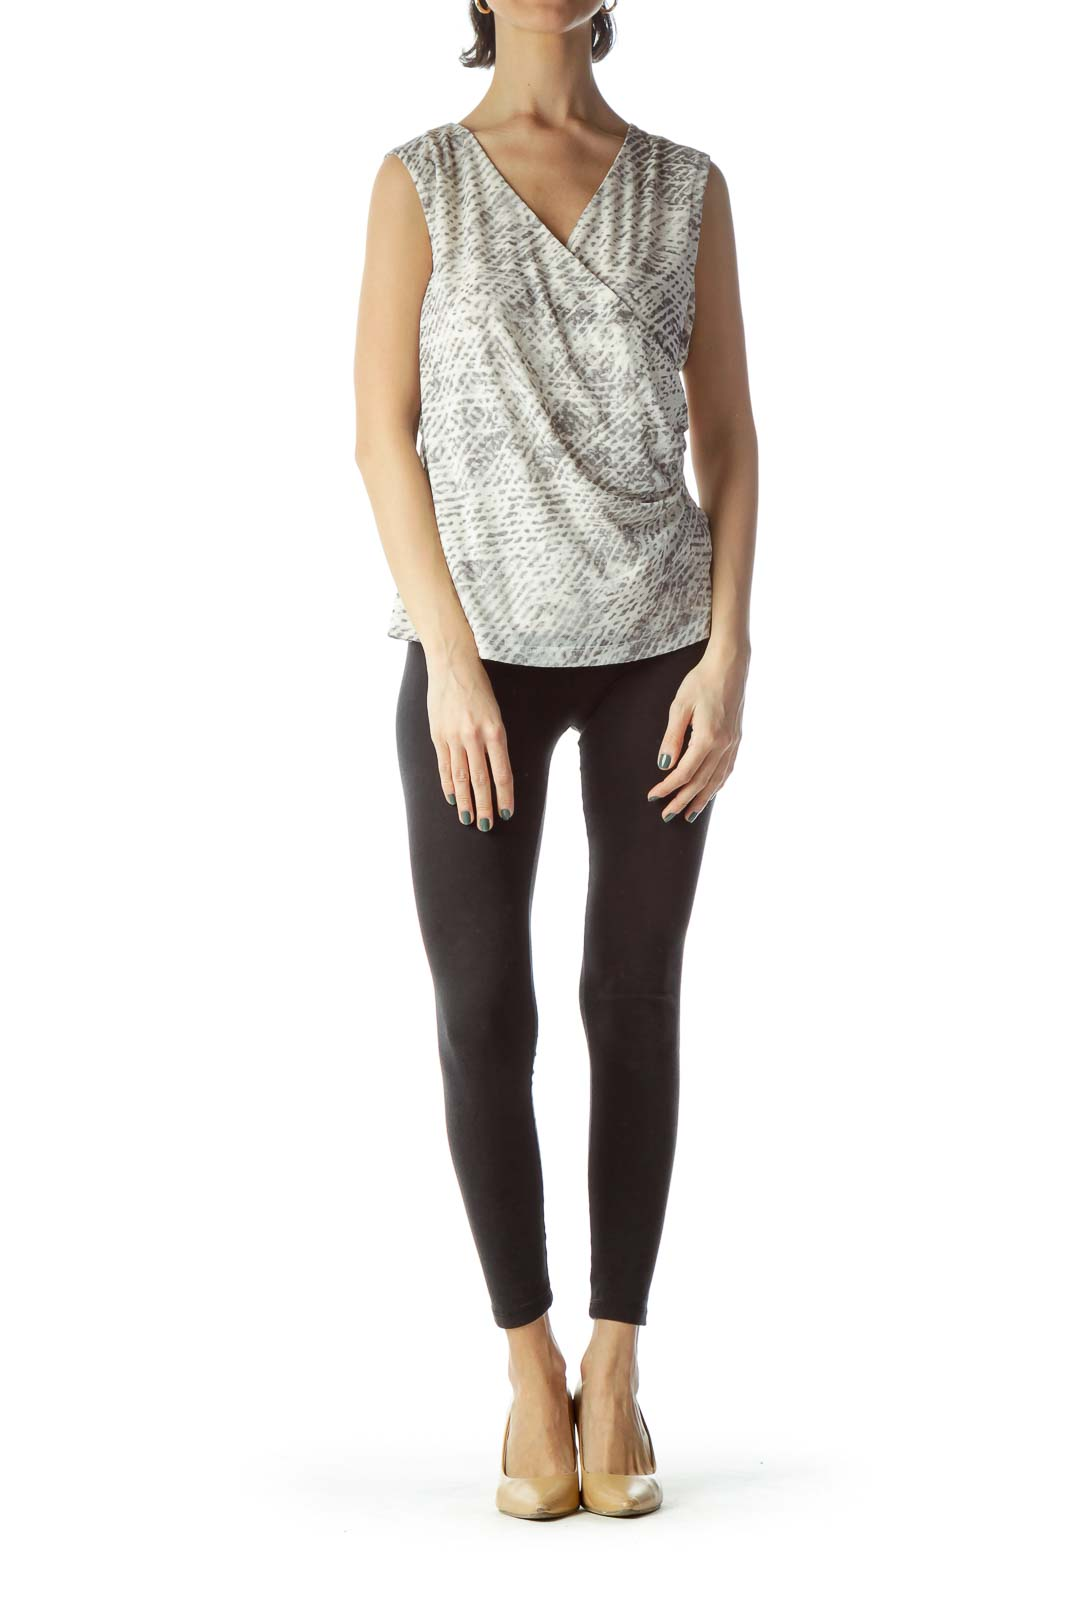 Gray Cream Snakeskin Print Sleeveless Top